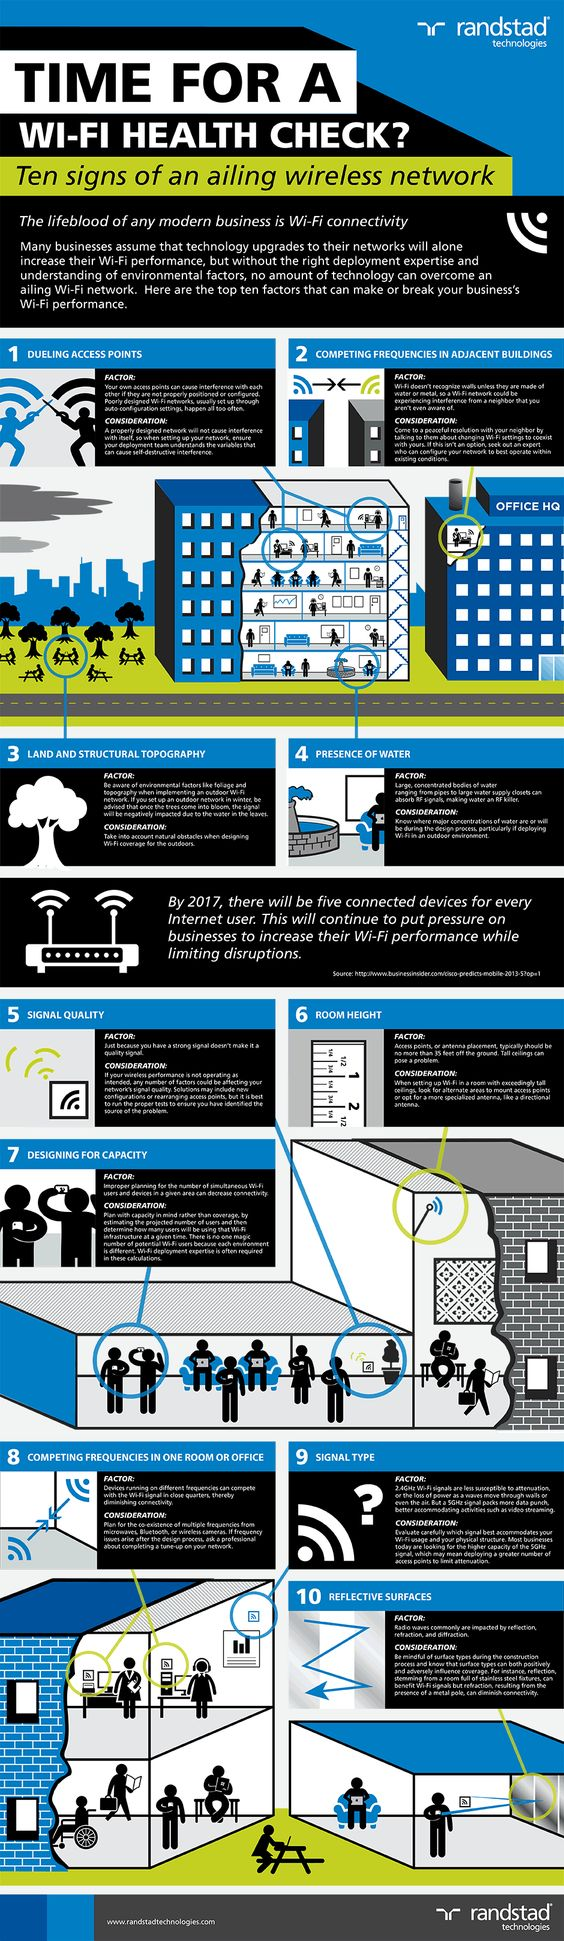 Infographic: Improve office Wi-Fi with these 10 Pointers from Randstad Technologies.